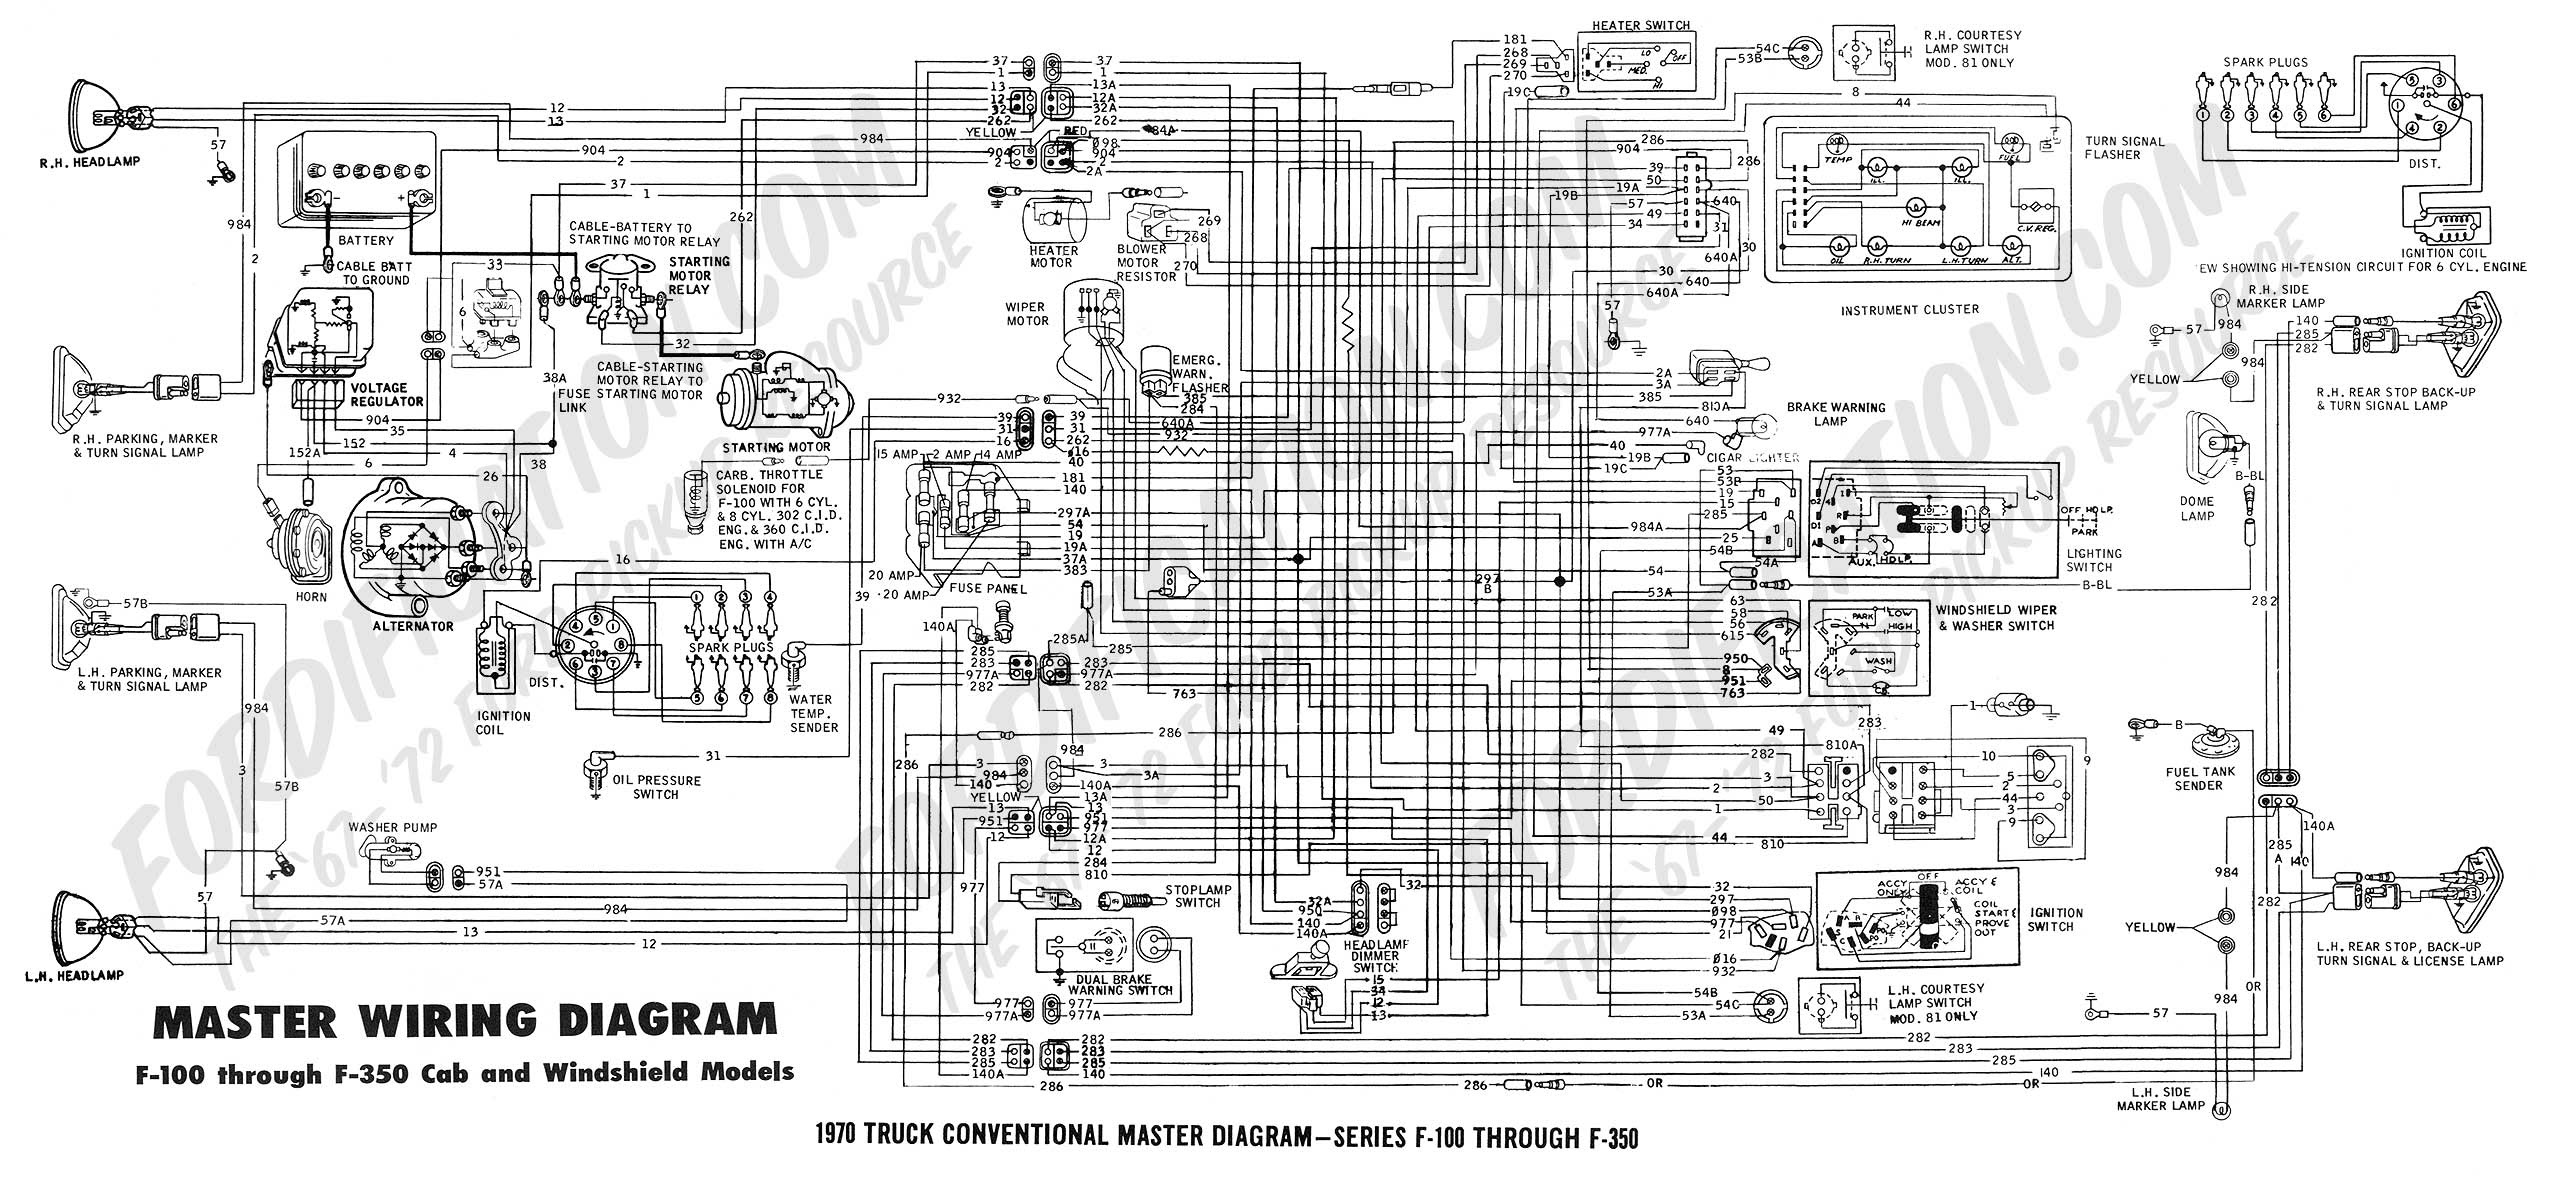 1970 Ignition Switch Diagram Ford Truck Enthusiasts Forums